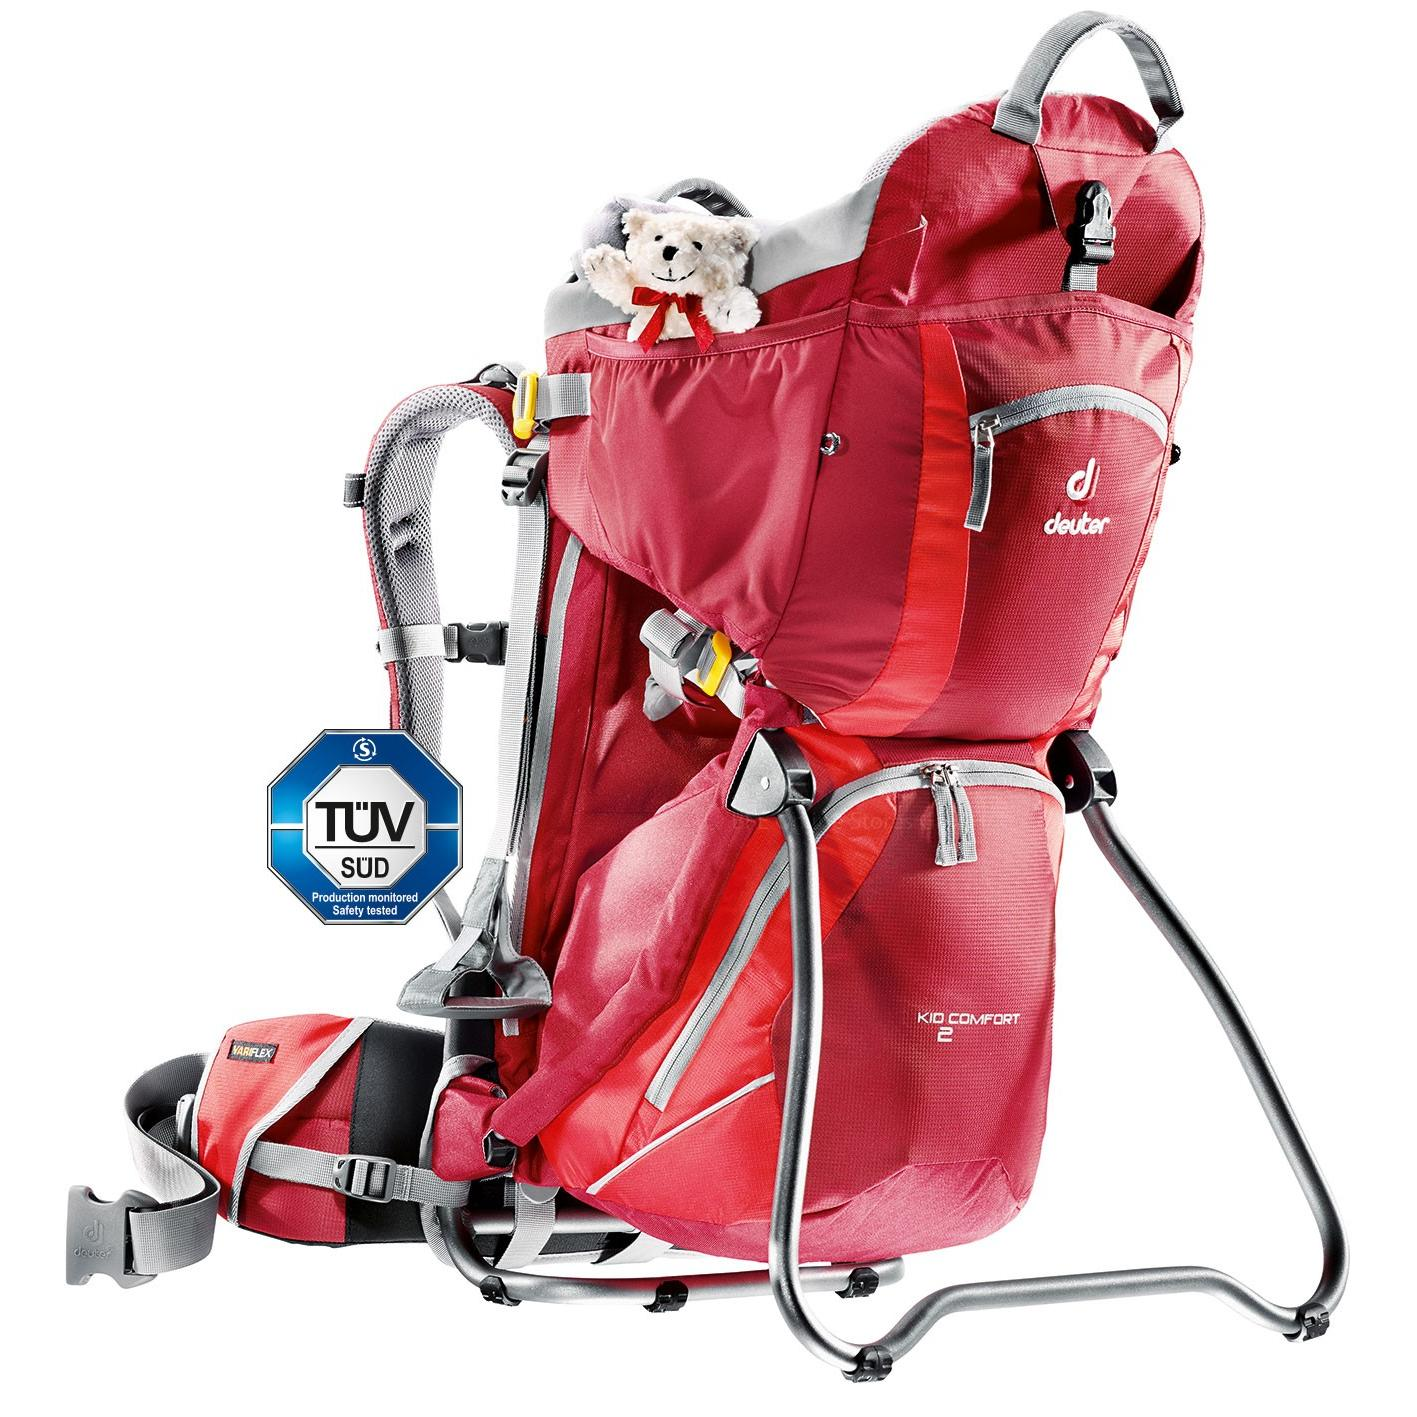 ce849b7b8ff6 Детская Переноска Deuter 2018 Kid Comfort Ii Cranberry-Fire, Family Kid  Comfort Ii,